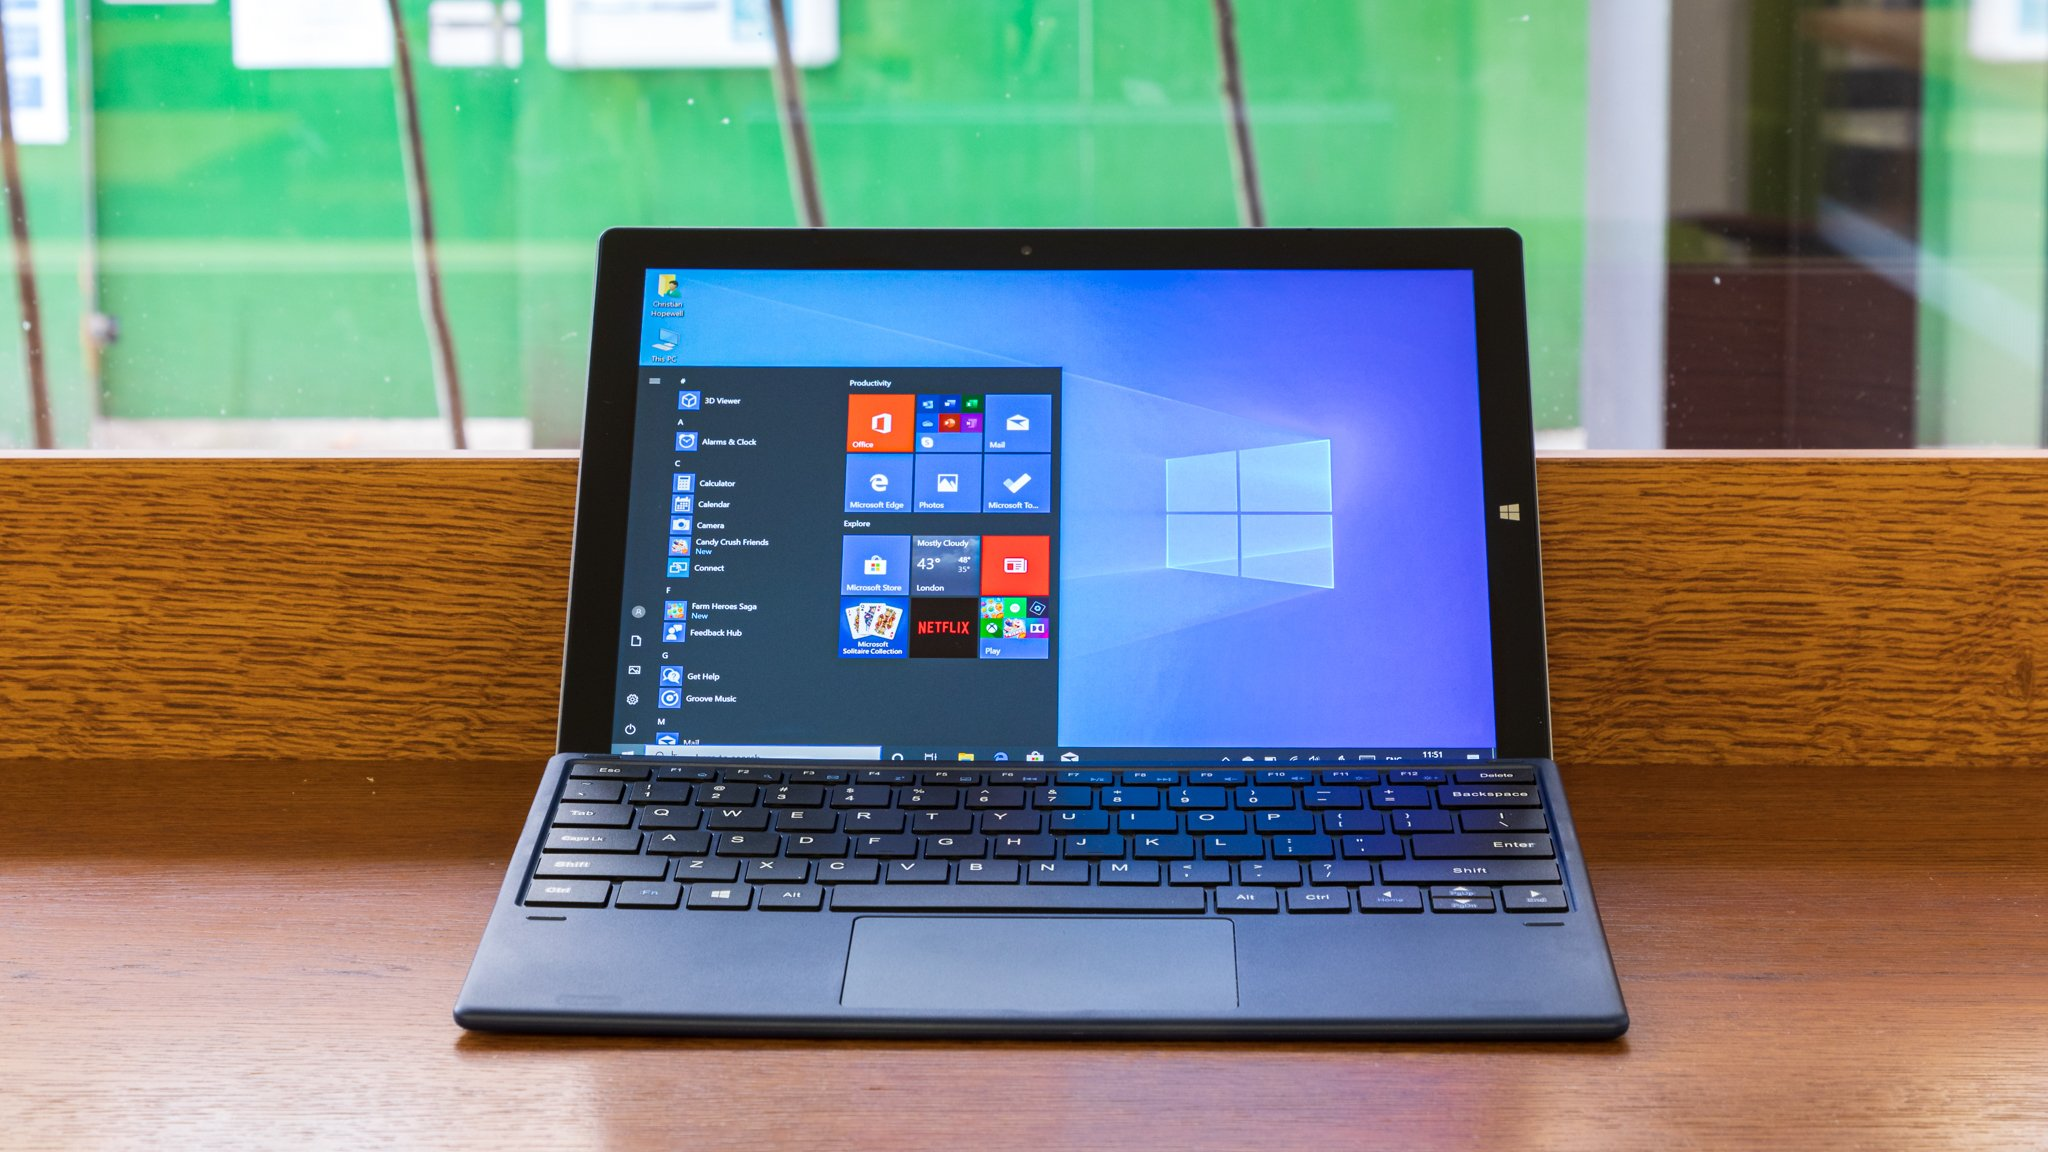 Chuwi UBook Pro review: A 2-in-1 Windows system at a very persuasive